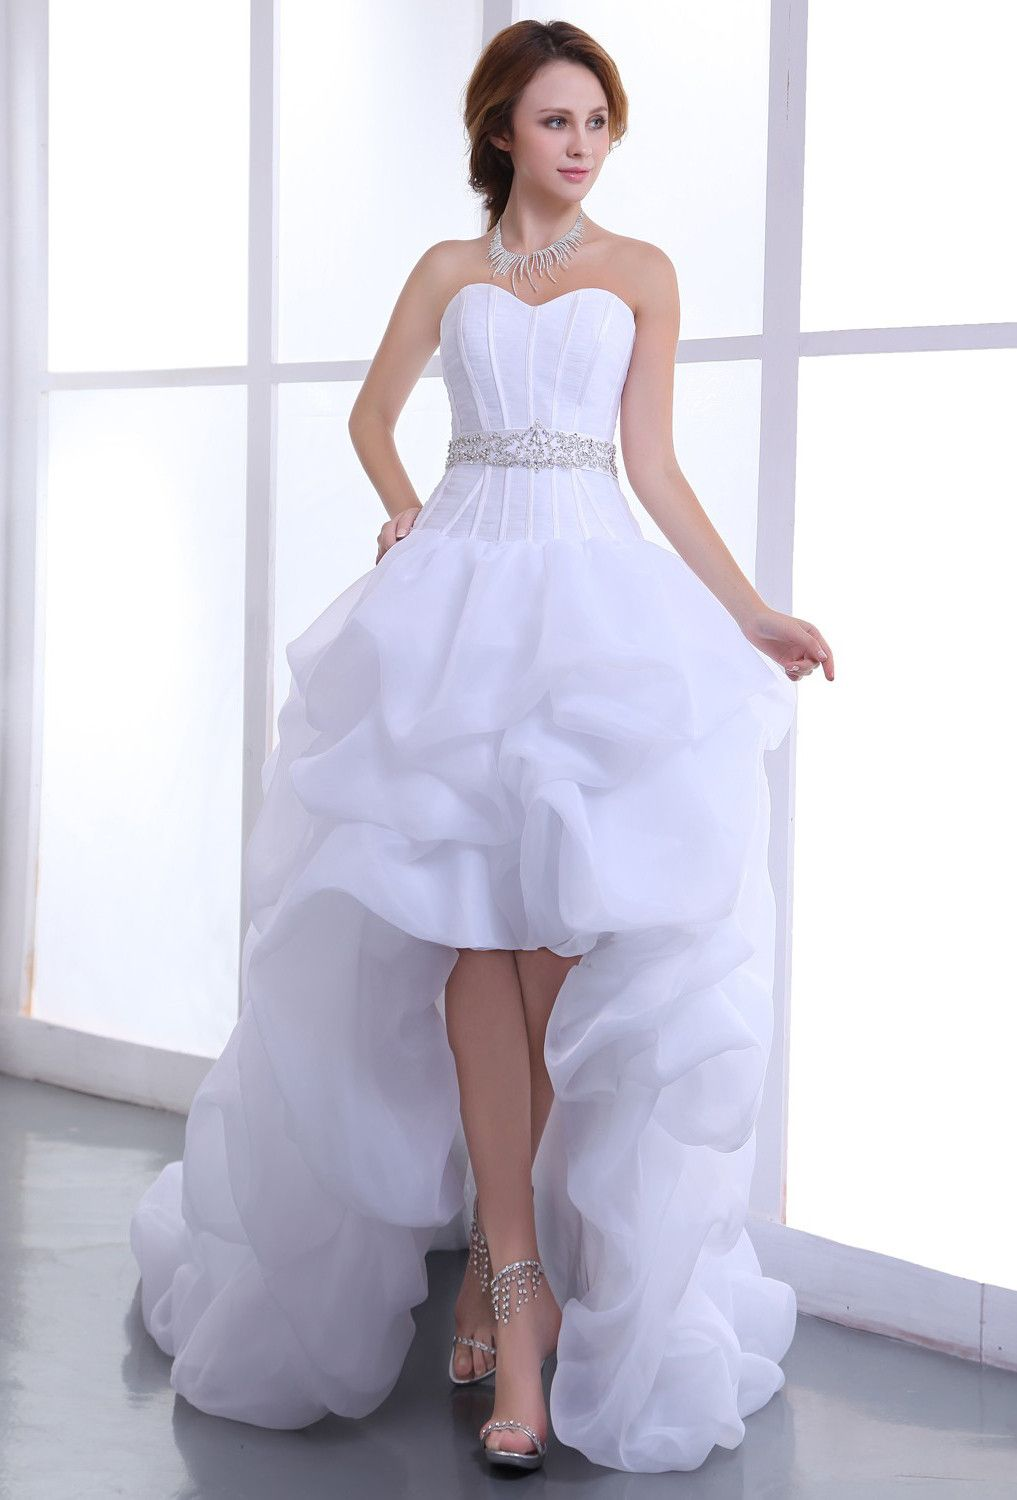 Cheap wedding dresses short front long back  Tamara Smith stamtam on Pinterest